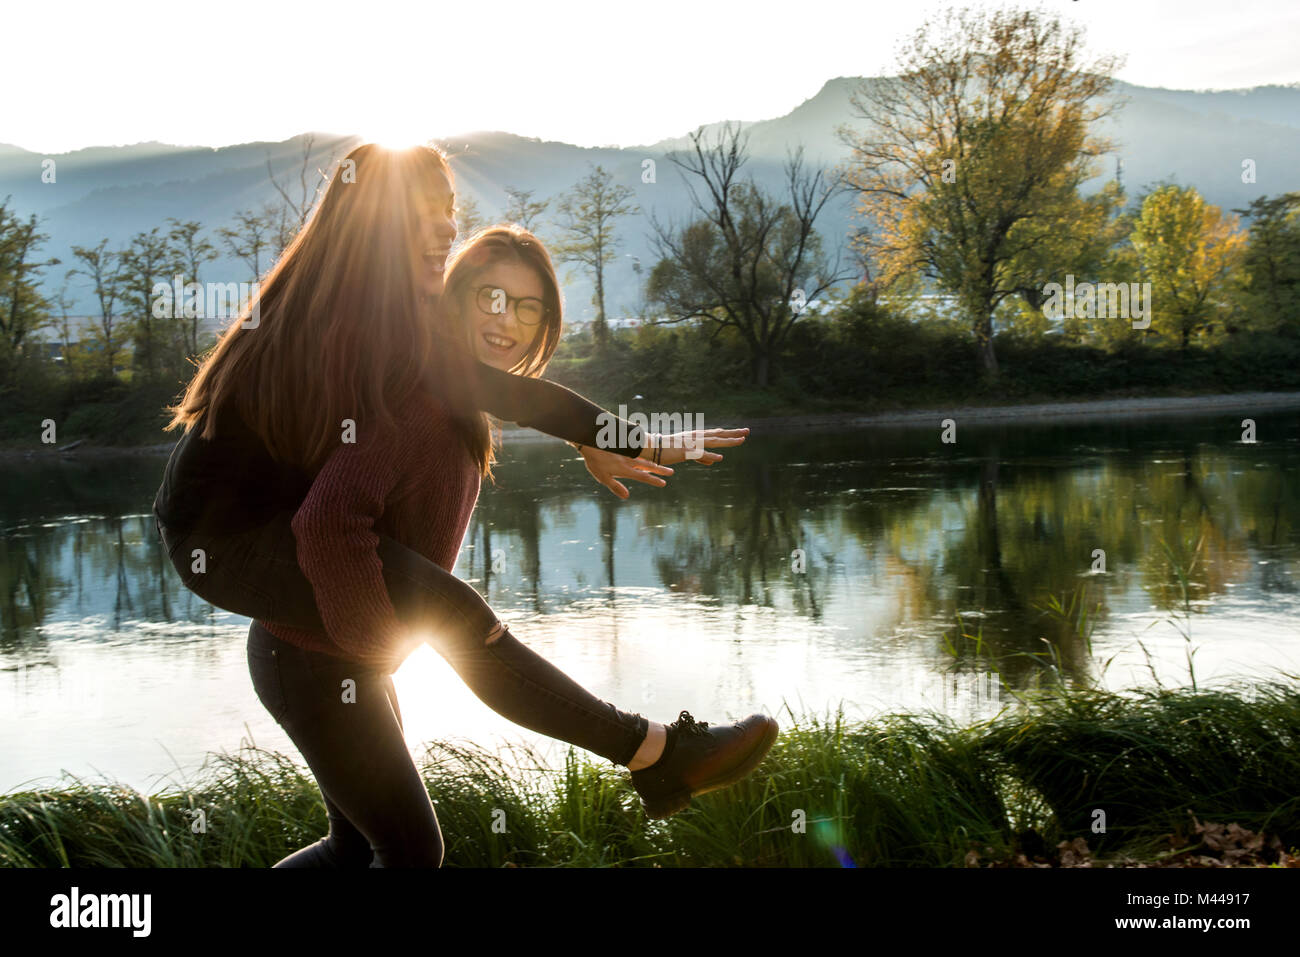 Young woman giving best friend piggy back on riverbank, Calolziocorte, Lombardy, Italy - Stock Image